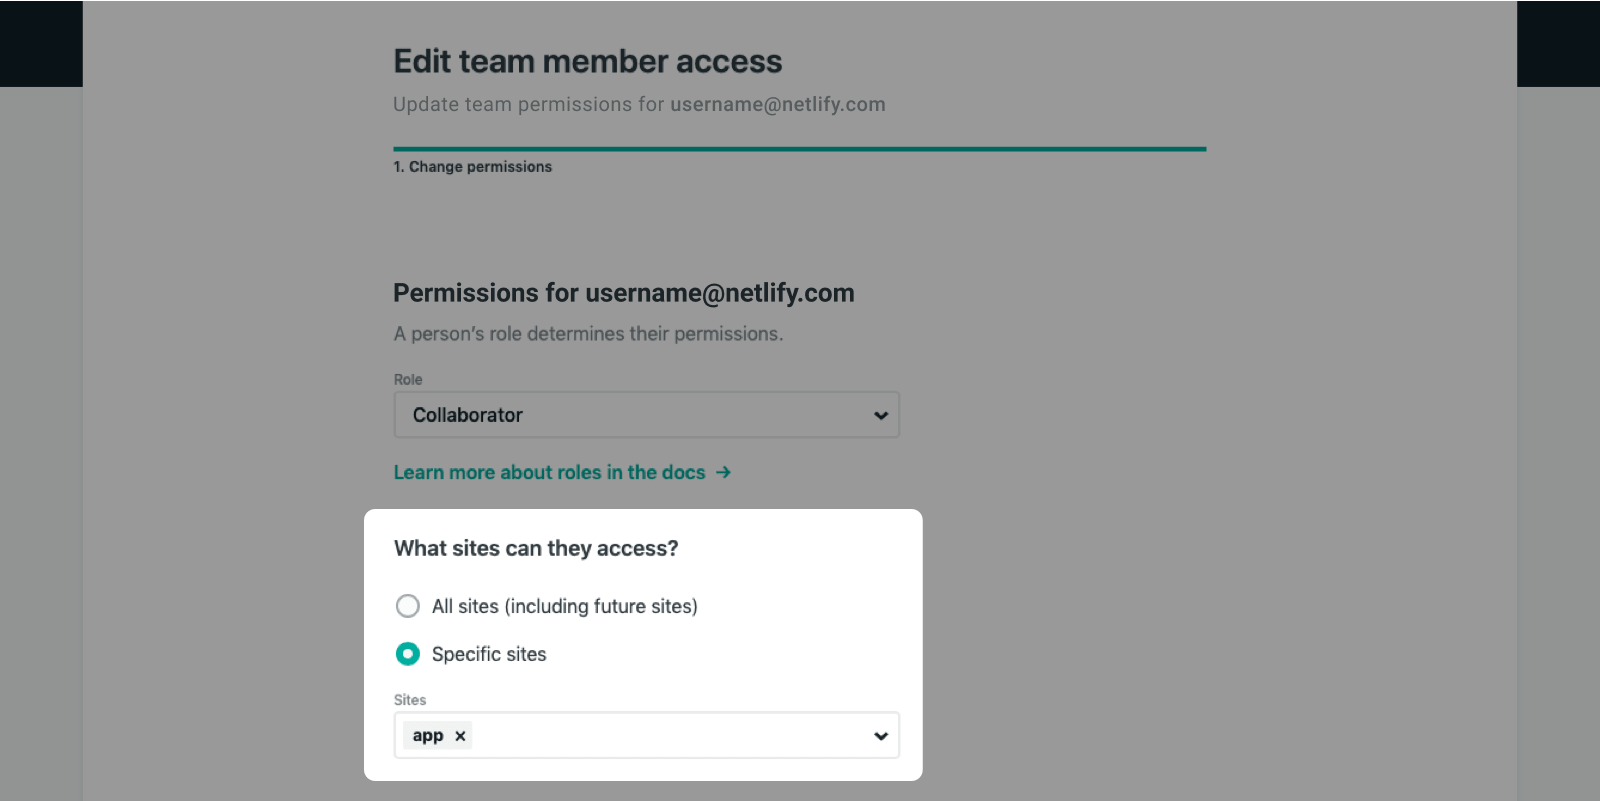 Owners can select the specific sites that a team member can access.